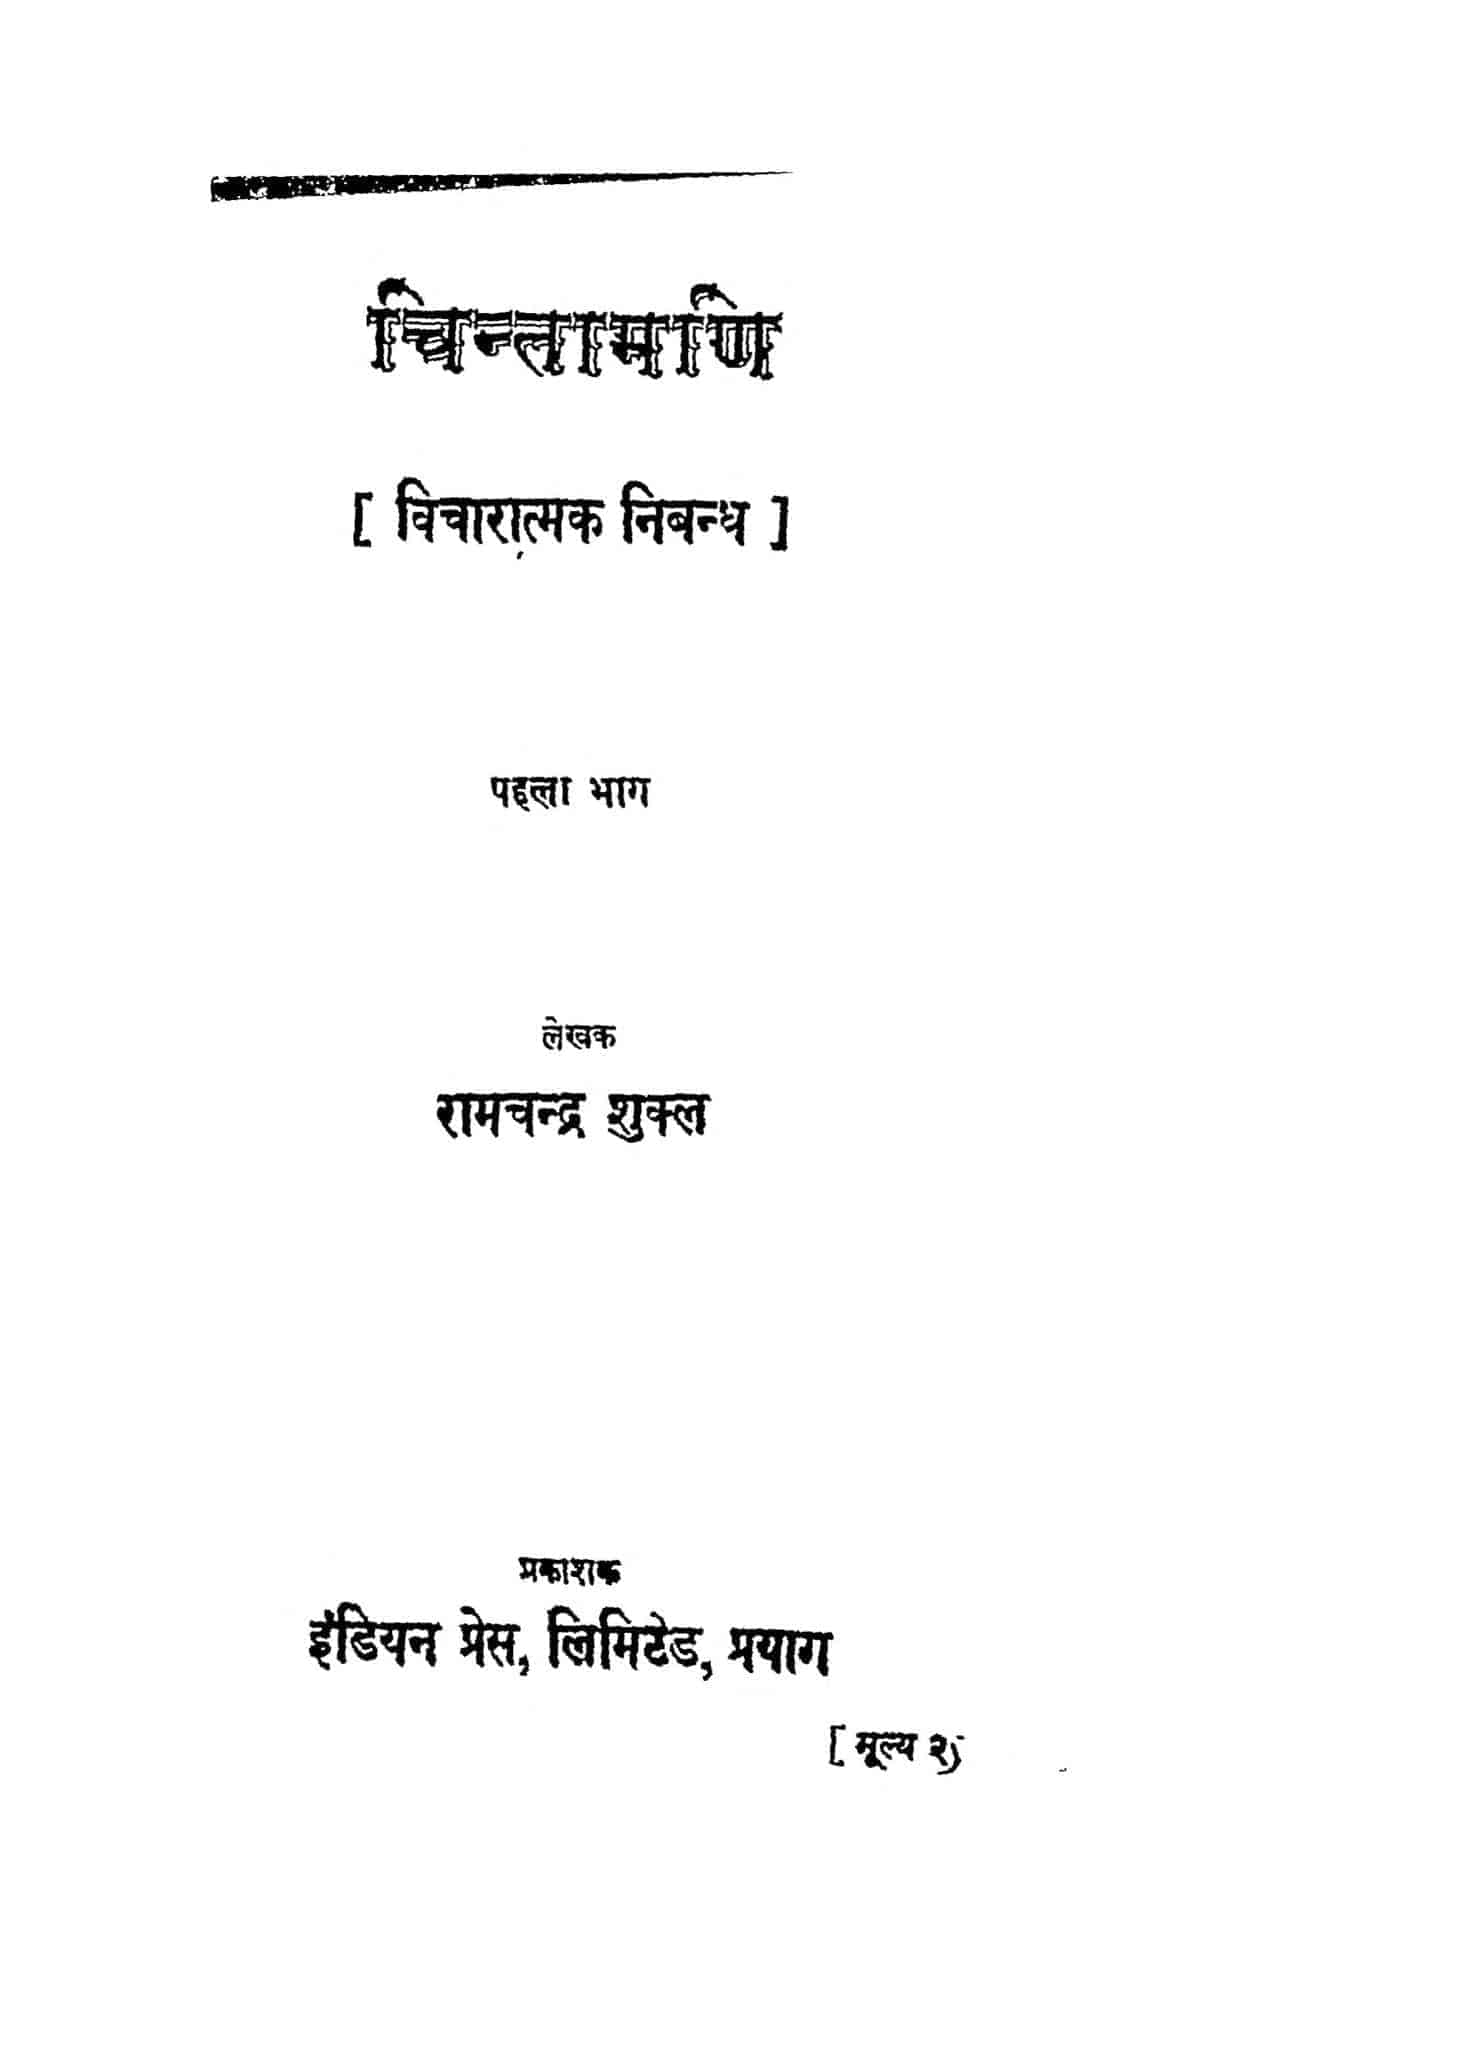 Book Image : चिन्तामणि भाग 1 - Chintamani bhag - I